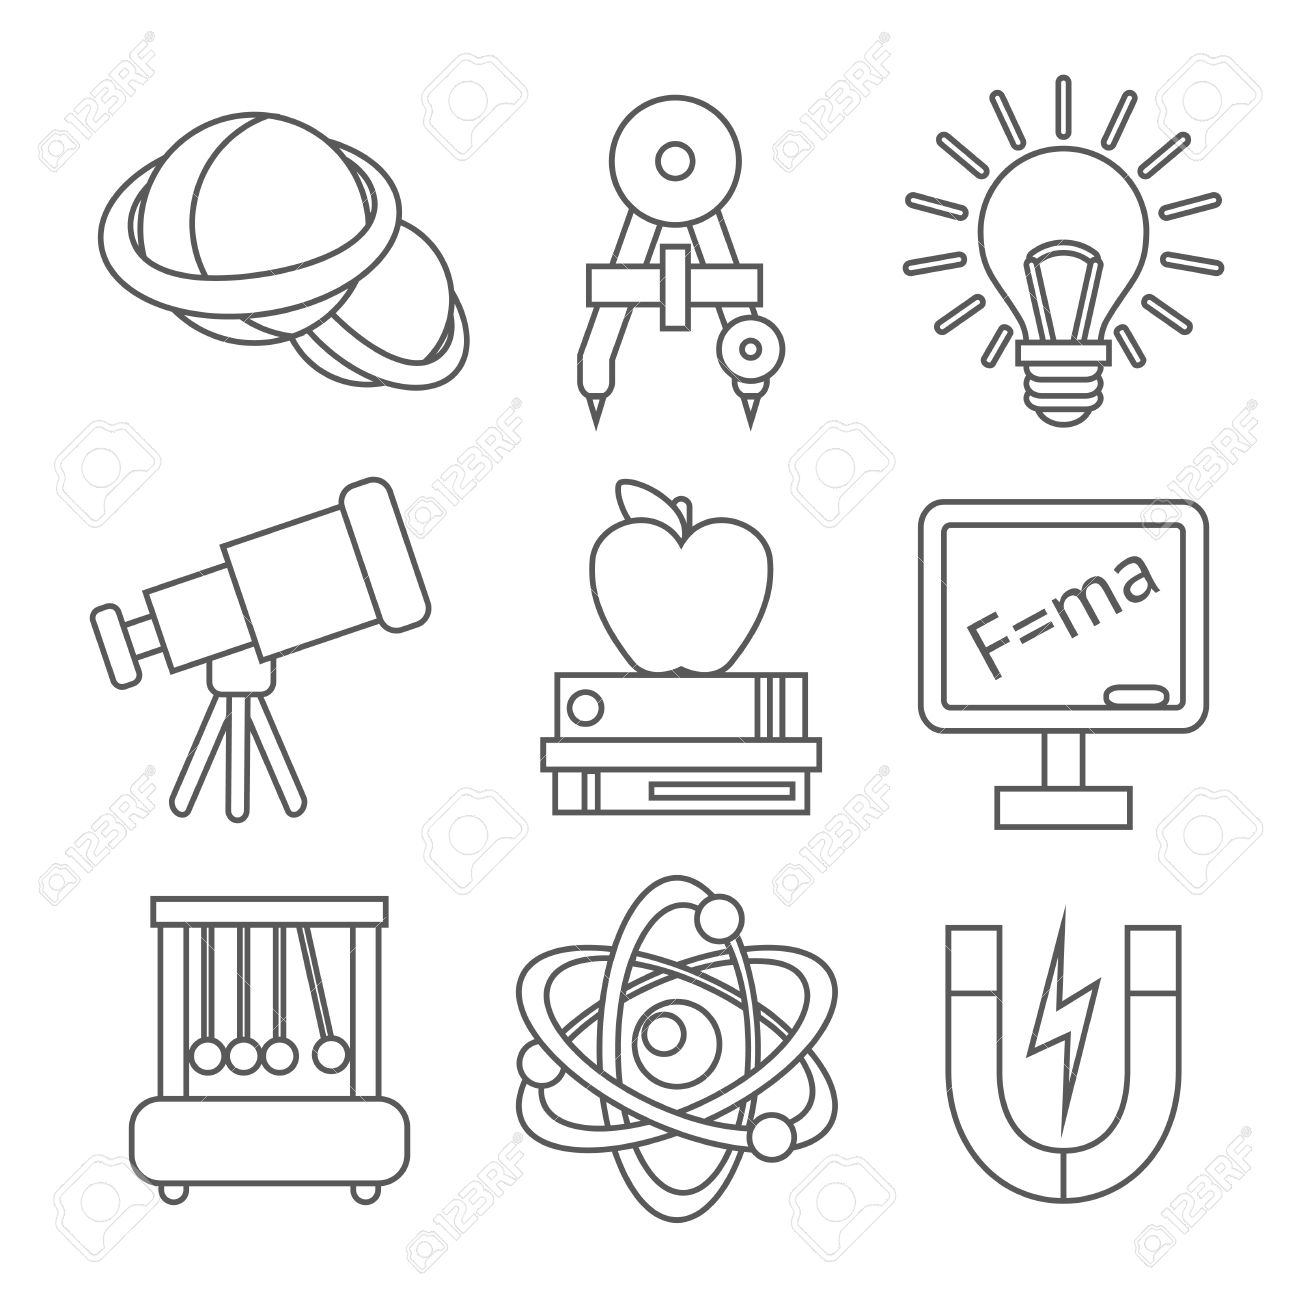 Physics Science Equipment School Laboratory Outline Education Icons Set Isolated Vector Illustration Stock